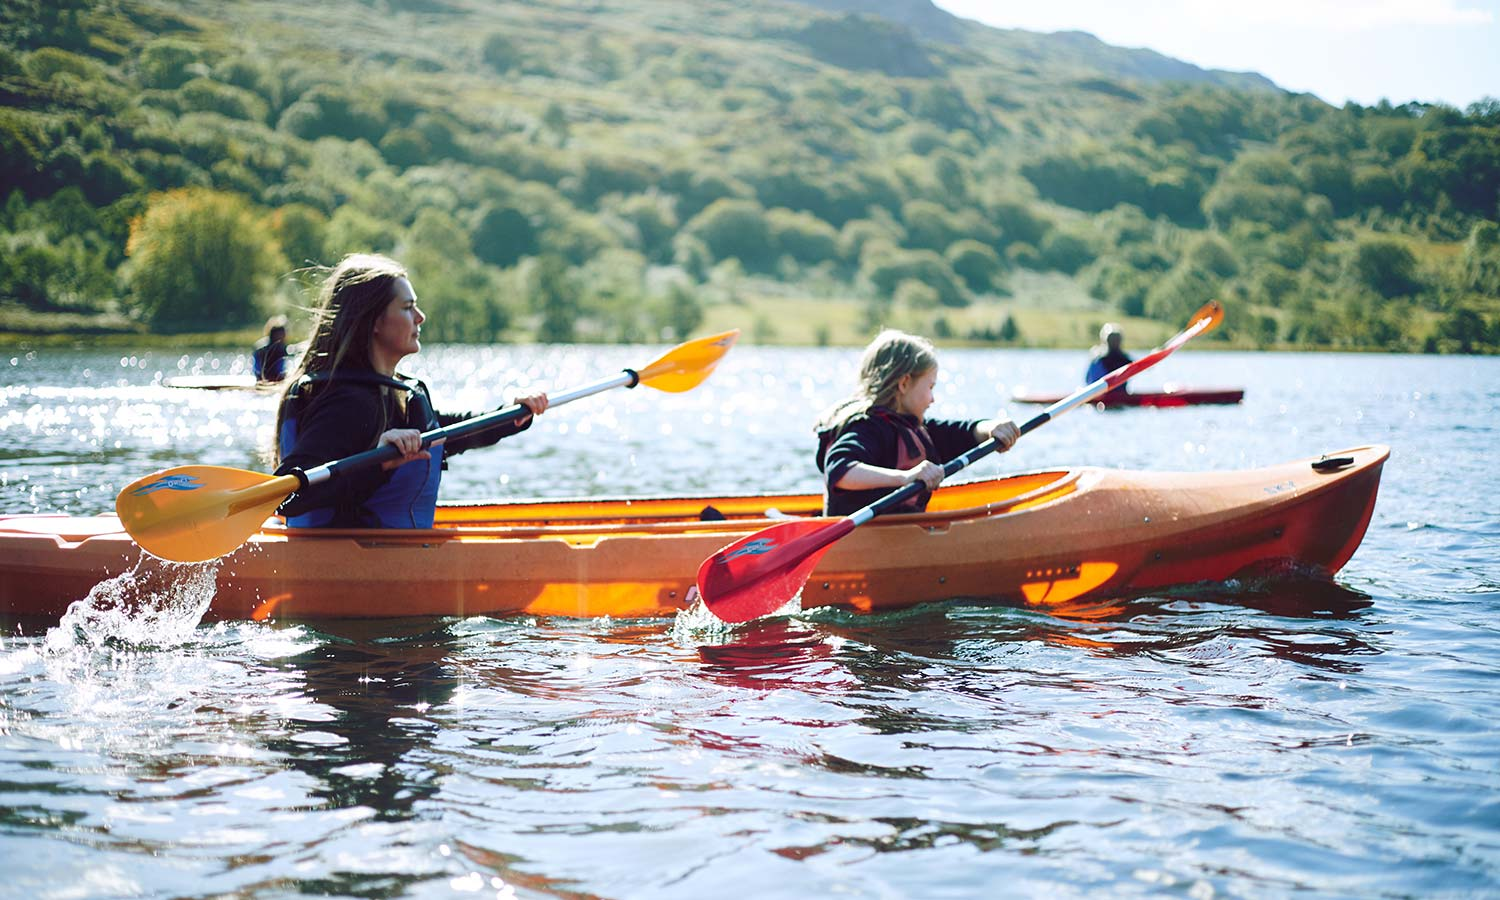 Or if paddling is your thing there are countless lakes and rivers for kayaking and canoeing